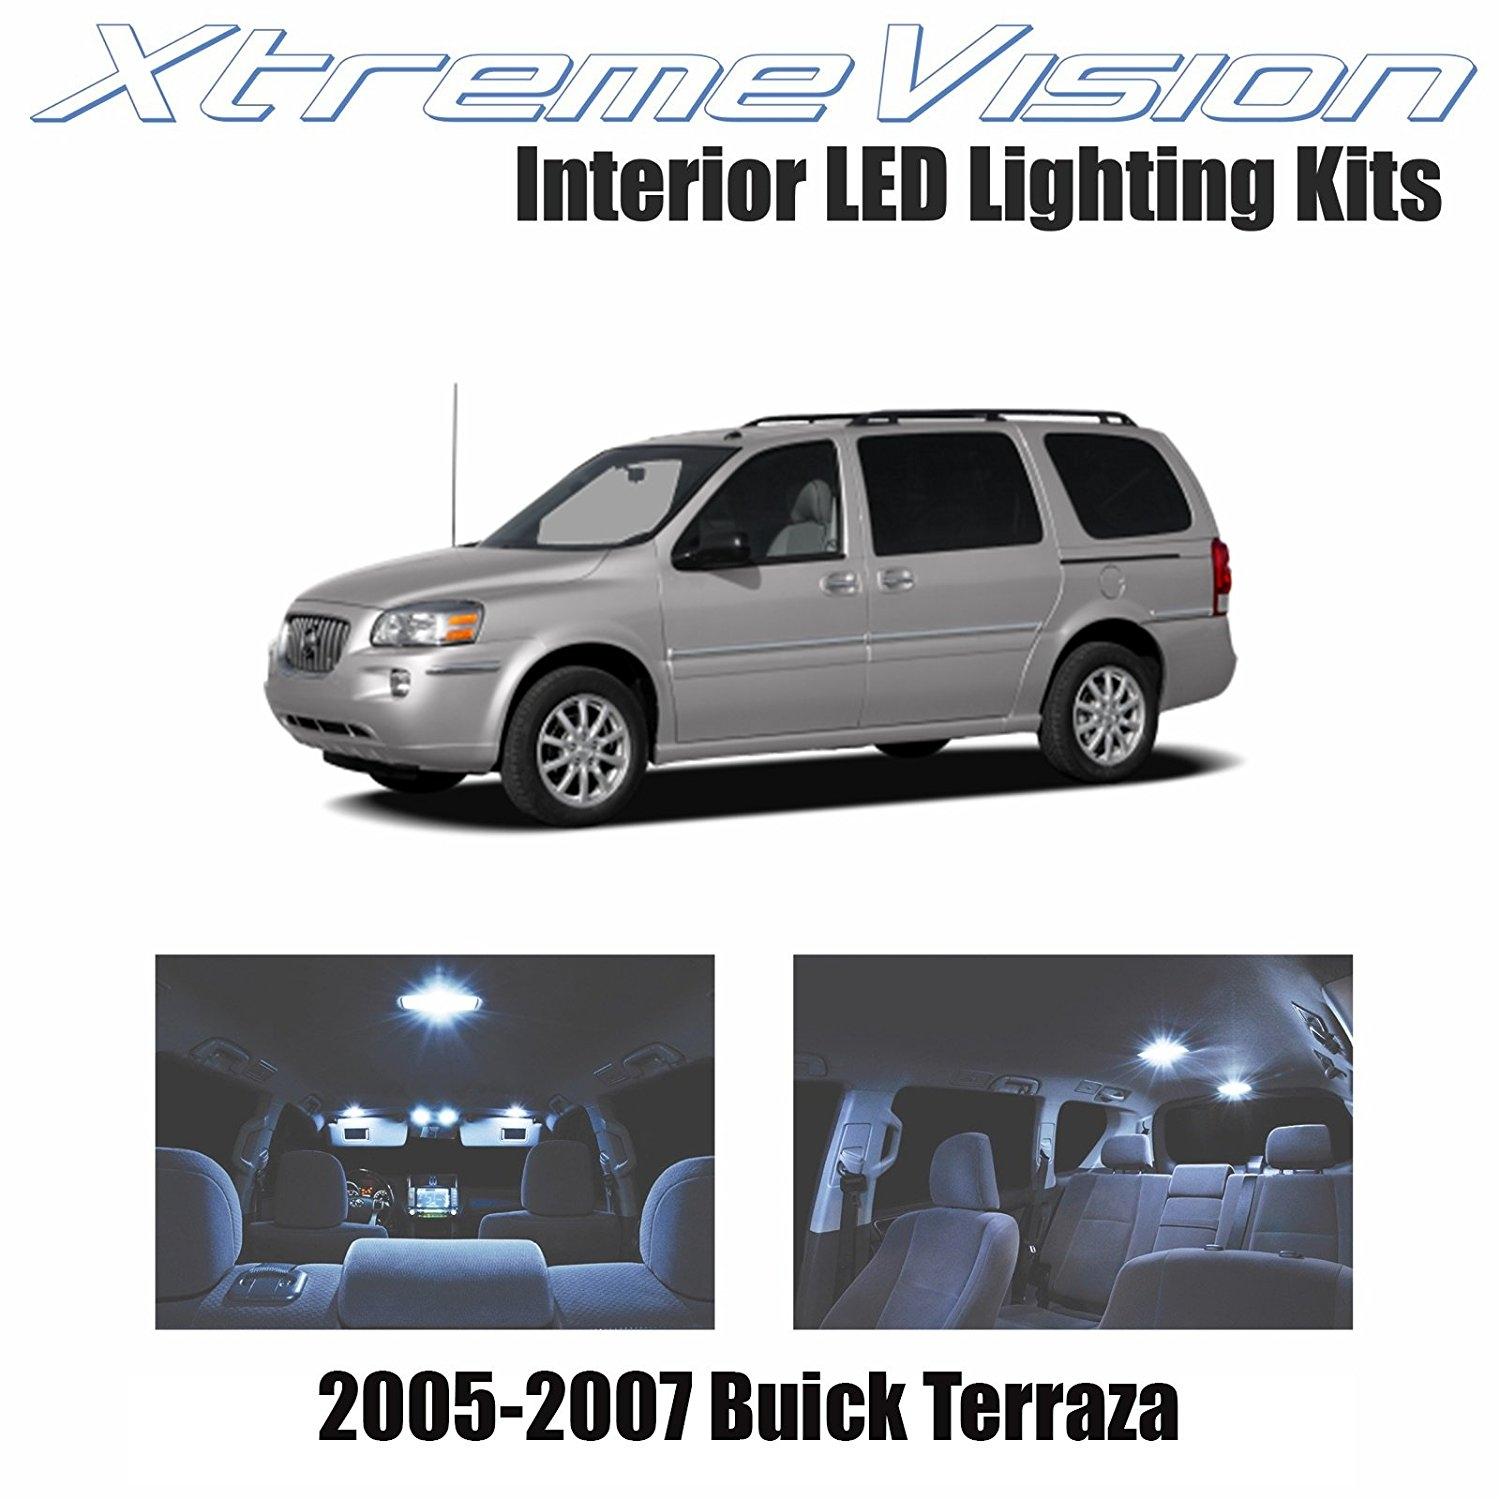 XtremeVision LED for Buick Terraza 2005-2007 (14 Pieces) Cool White Premium Interior LED Kit Package + Installation Tool